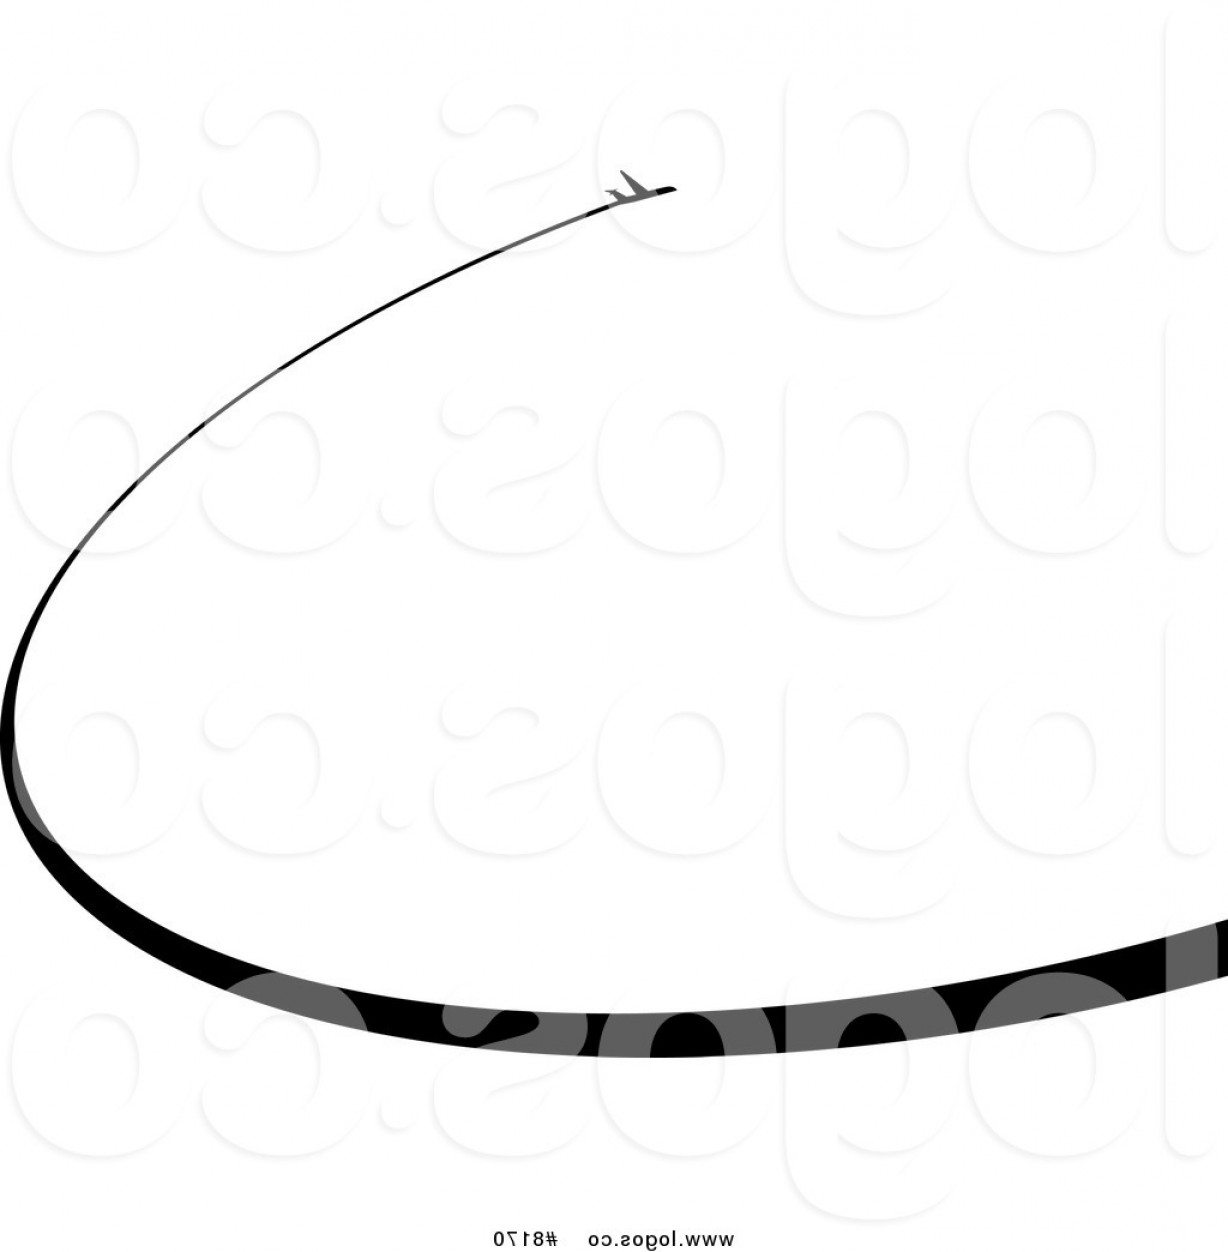 1228x1252 Royalty Free Vector Of A Black Airplane And Curved Chem Trail Logo